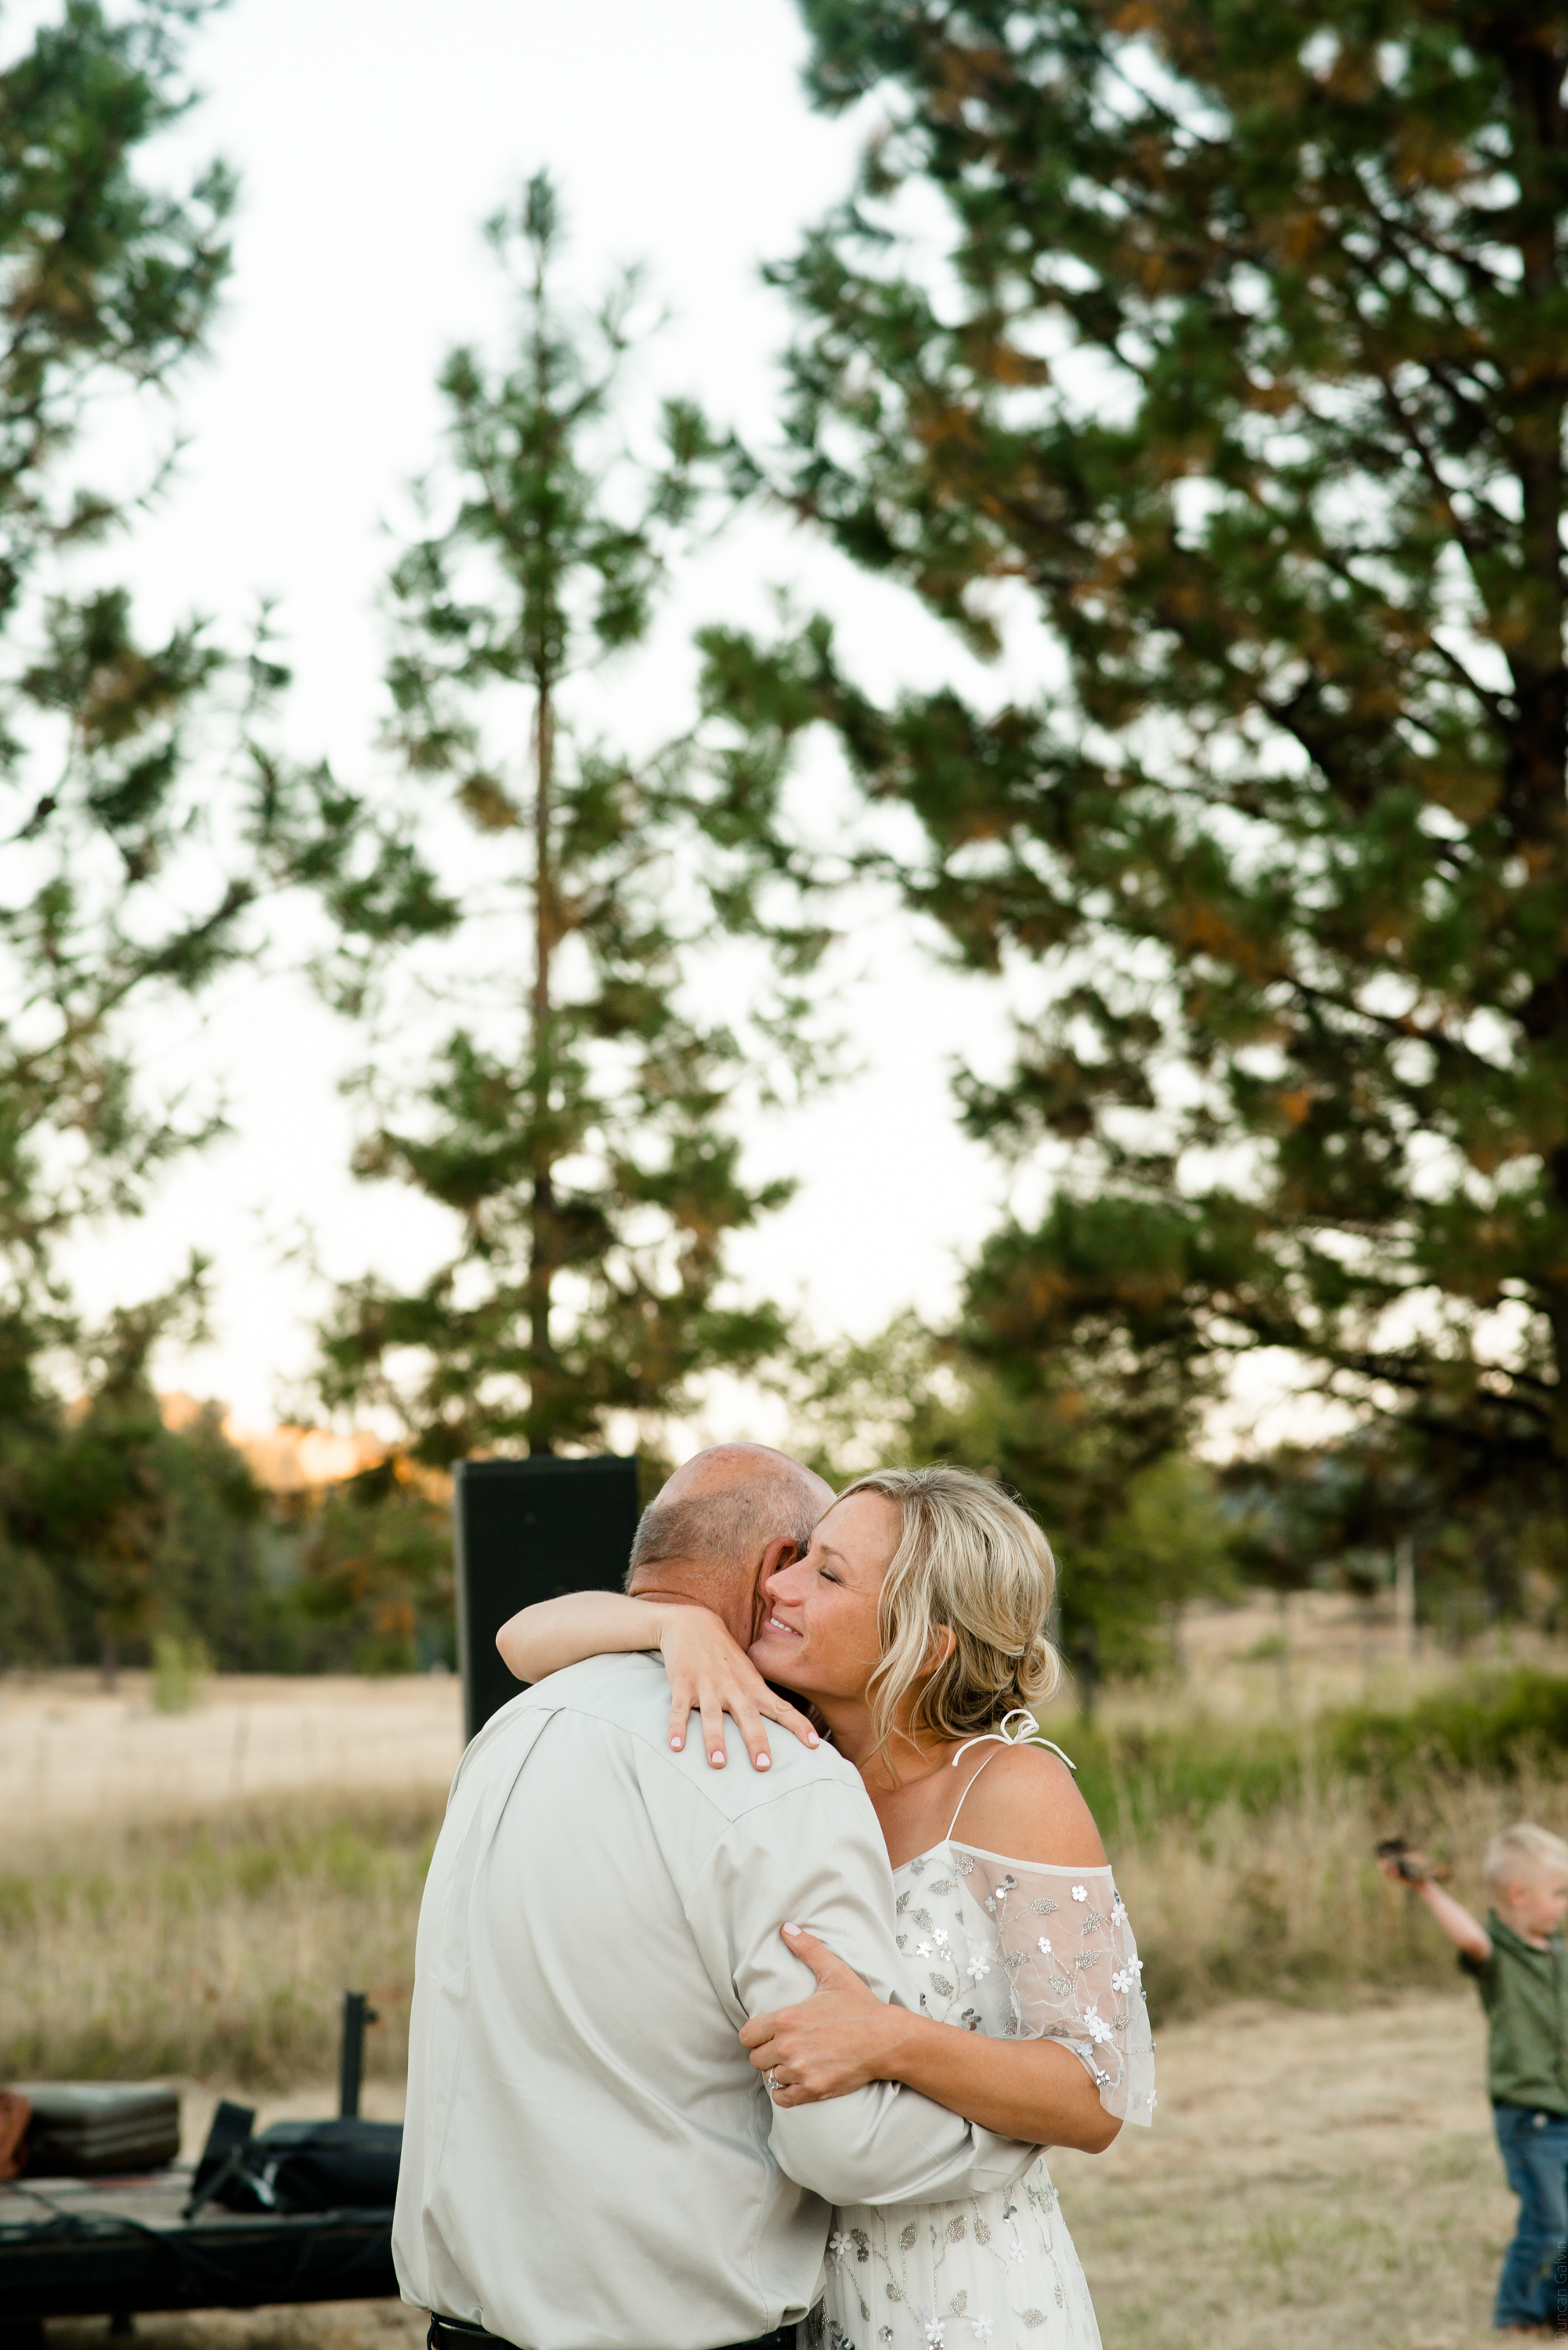 Lana Micah Wedding La Grande Oregon September 2018 Please Credit Talia Jean Galvin (545 of 687).jpg